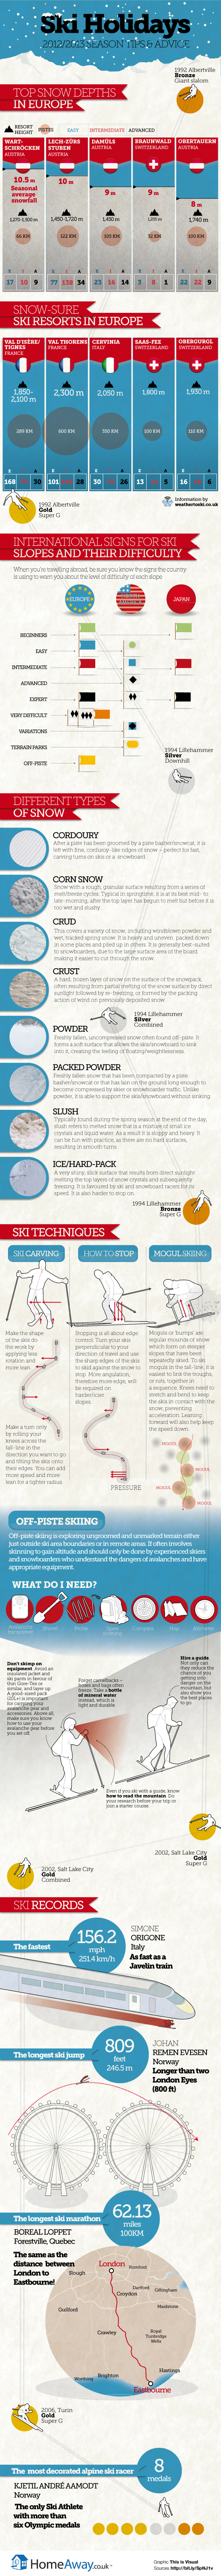 201213-ski-season-tips--advice_50c5df8b0ae45